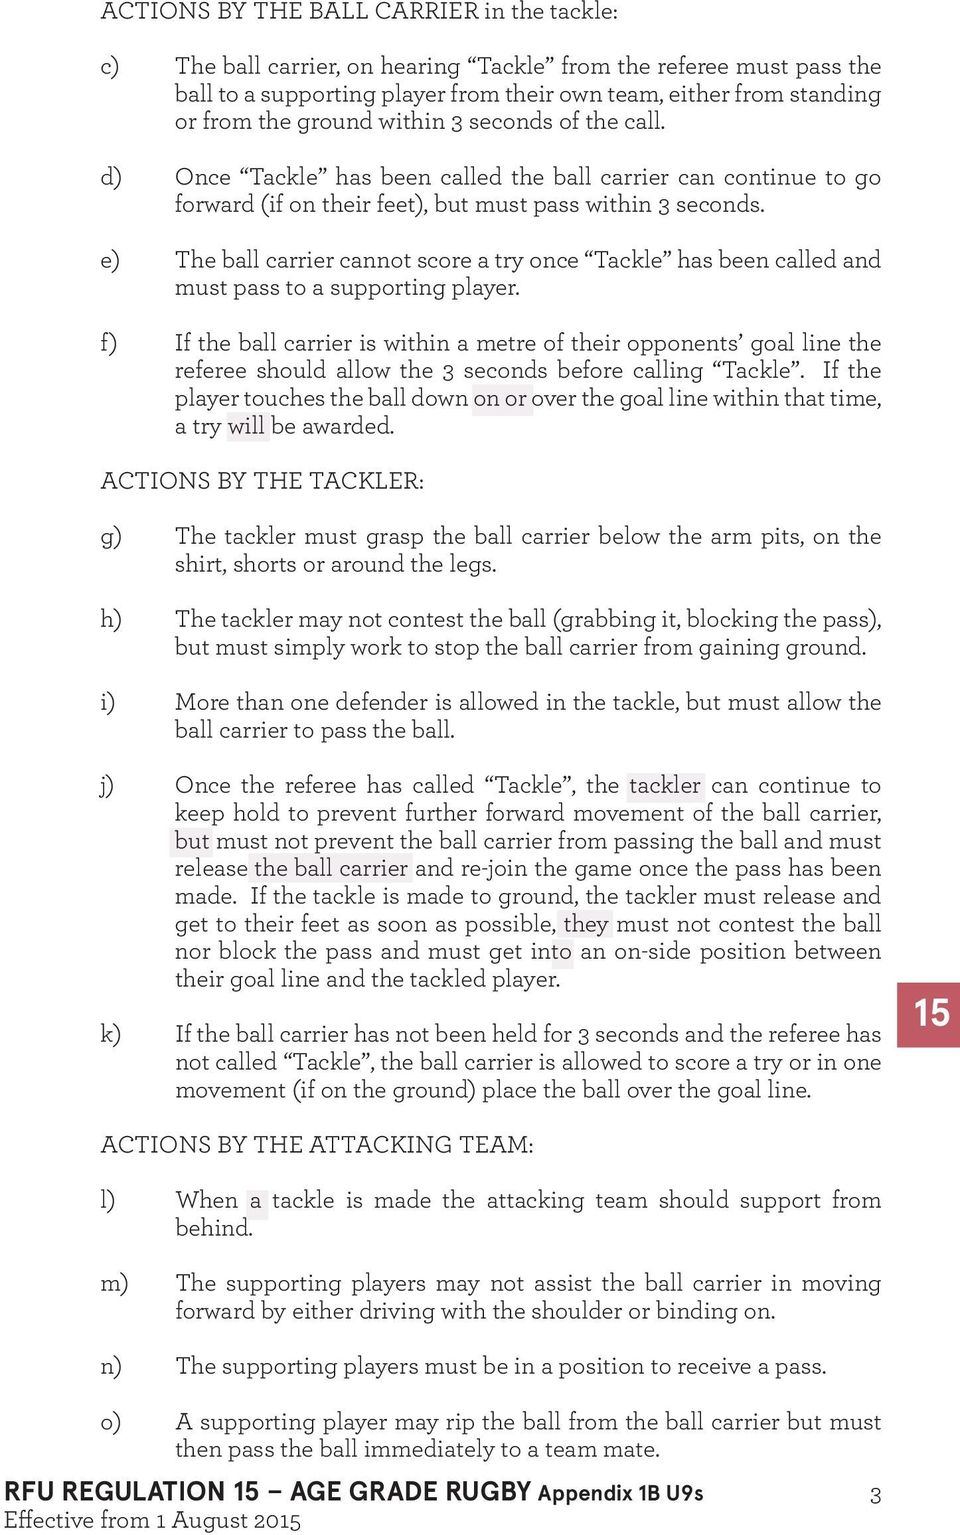 e) The ball carrier cannot score a try once Tackle has been called and must pass to a supporting player.